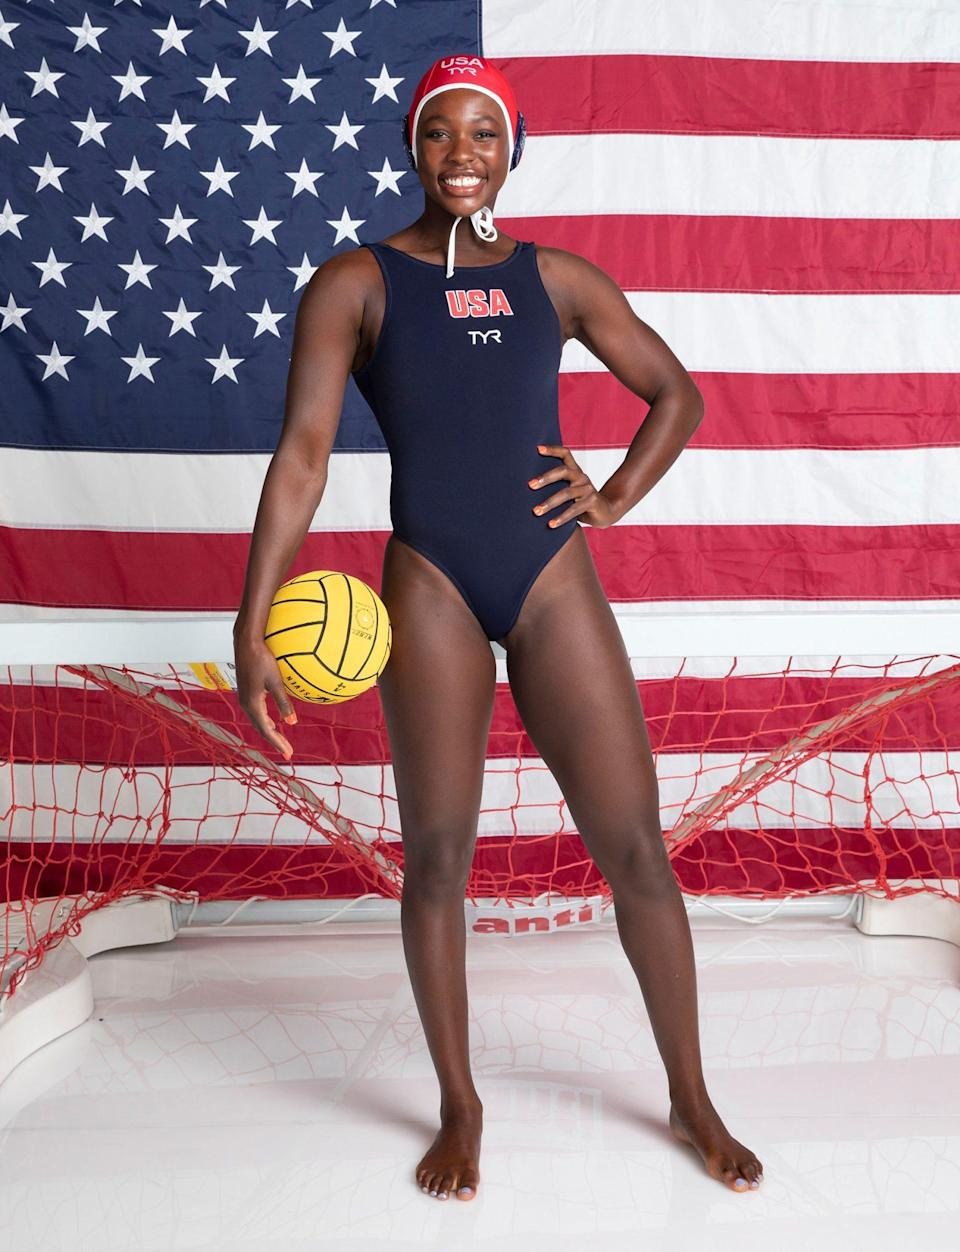 "<p>Water polo's Johnson, 26, already has an Olympic gold medal under her belt from the 2016 Olympics. Before finding success professionally, Johnson played water polo at Princeton University. The athlete is the first African American woman to compete for the U.S. on the Olympic stage in water polo, and<a href=""https://people.com/sports/water-polo-olympian-ashleigh-johnson-on-how-she-pivoted-her-training-after-games-were-postponed/"" rel=""nofollow noopener"" target=""_blank"" data-ylk=""slk:previously told PEOPLE"" class=""link rapid-noclick-resp""> previously told PEOPLE</a>, ""It's been a huge honor and responsibility for me to represent Black women in our sport, be an advocate for Black women in our sport and also drive to bring more people of color into our sport.""</p>"